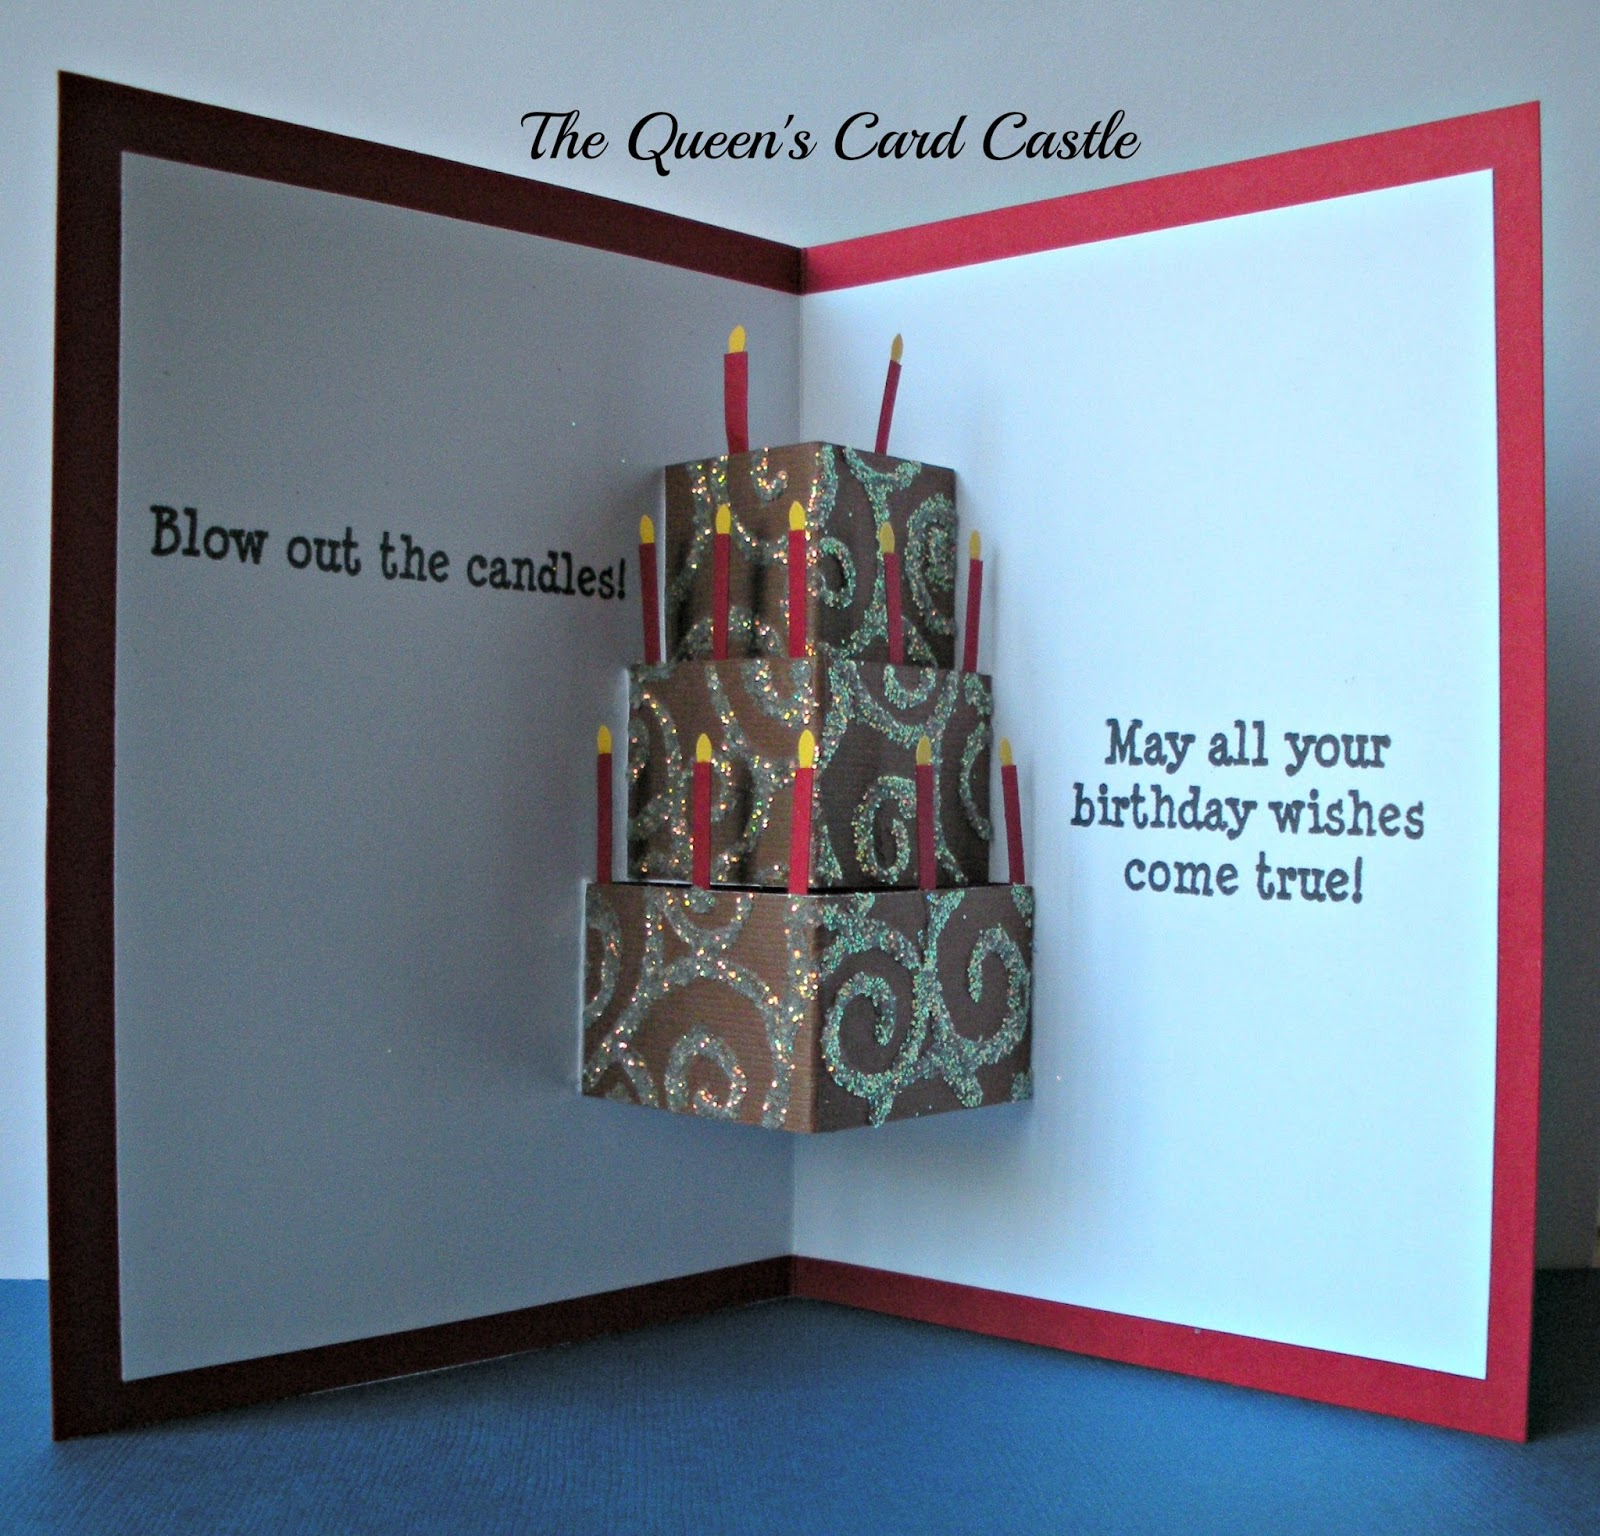 The Queen's Card Castle: Birthday Card